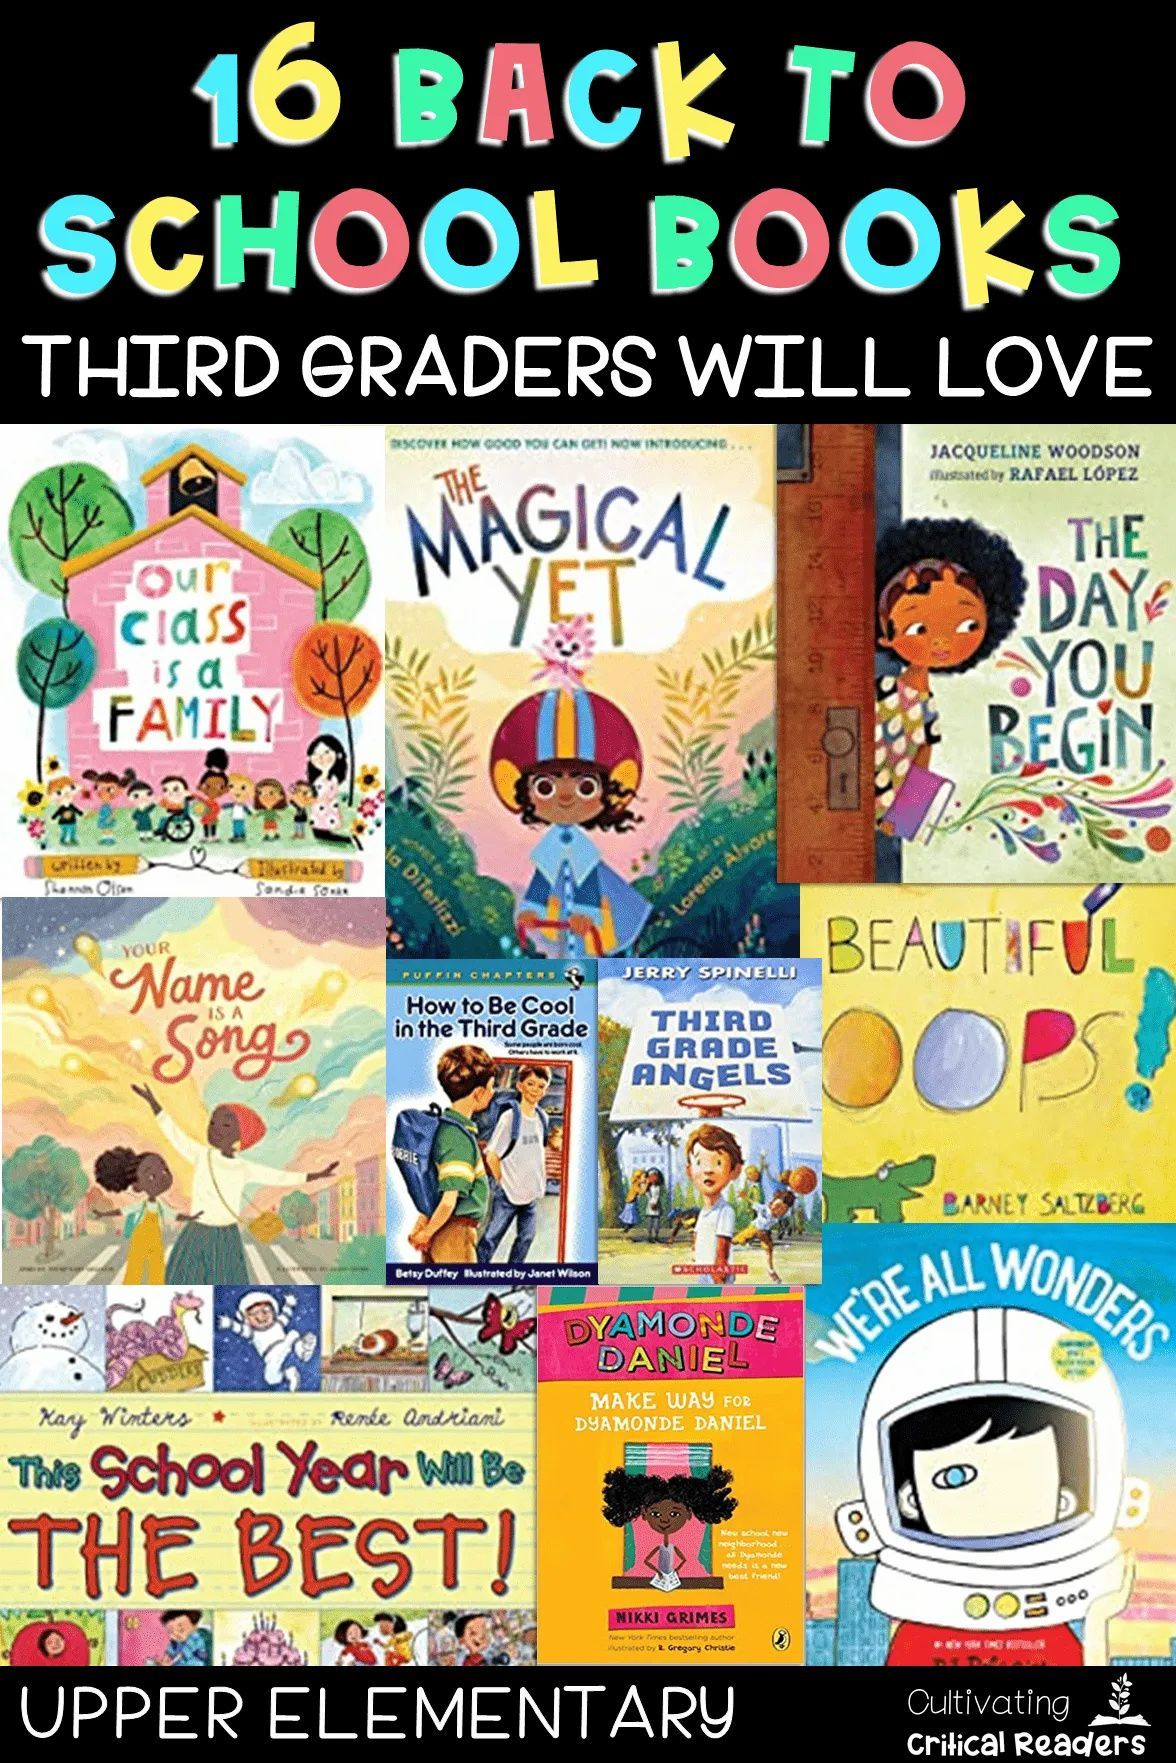 16 Back To School Books Third Graders Will Love